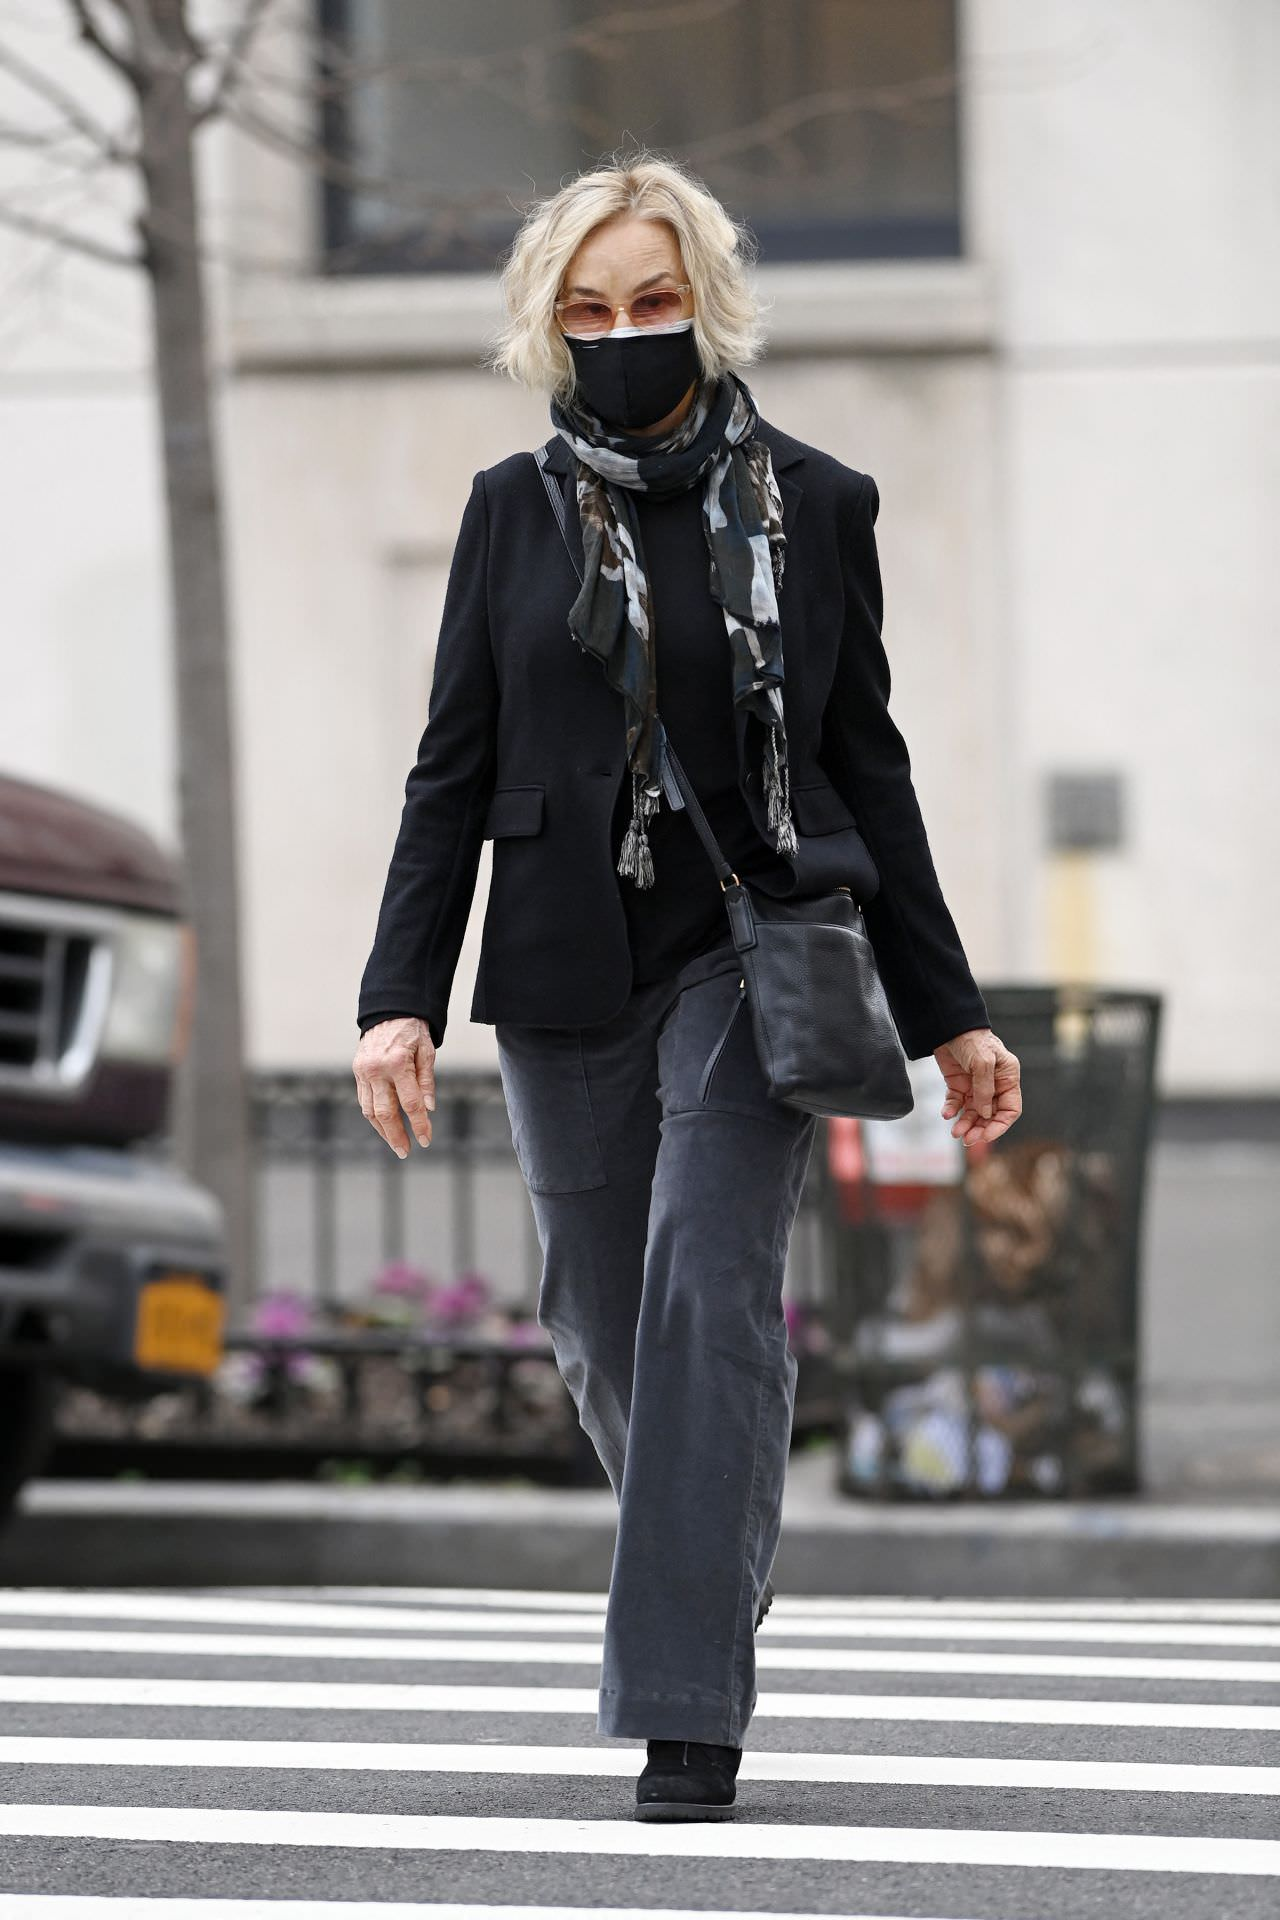 Jessica Lange in Black Outfit at Madison Avenue in NY